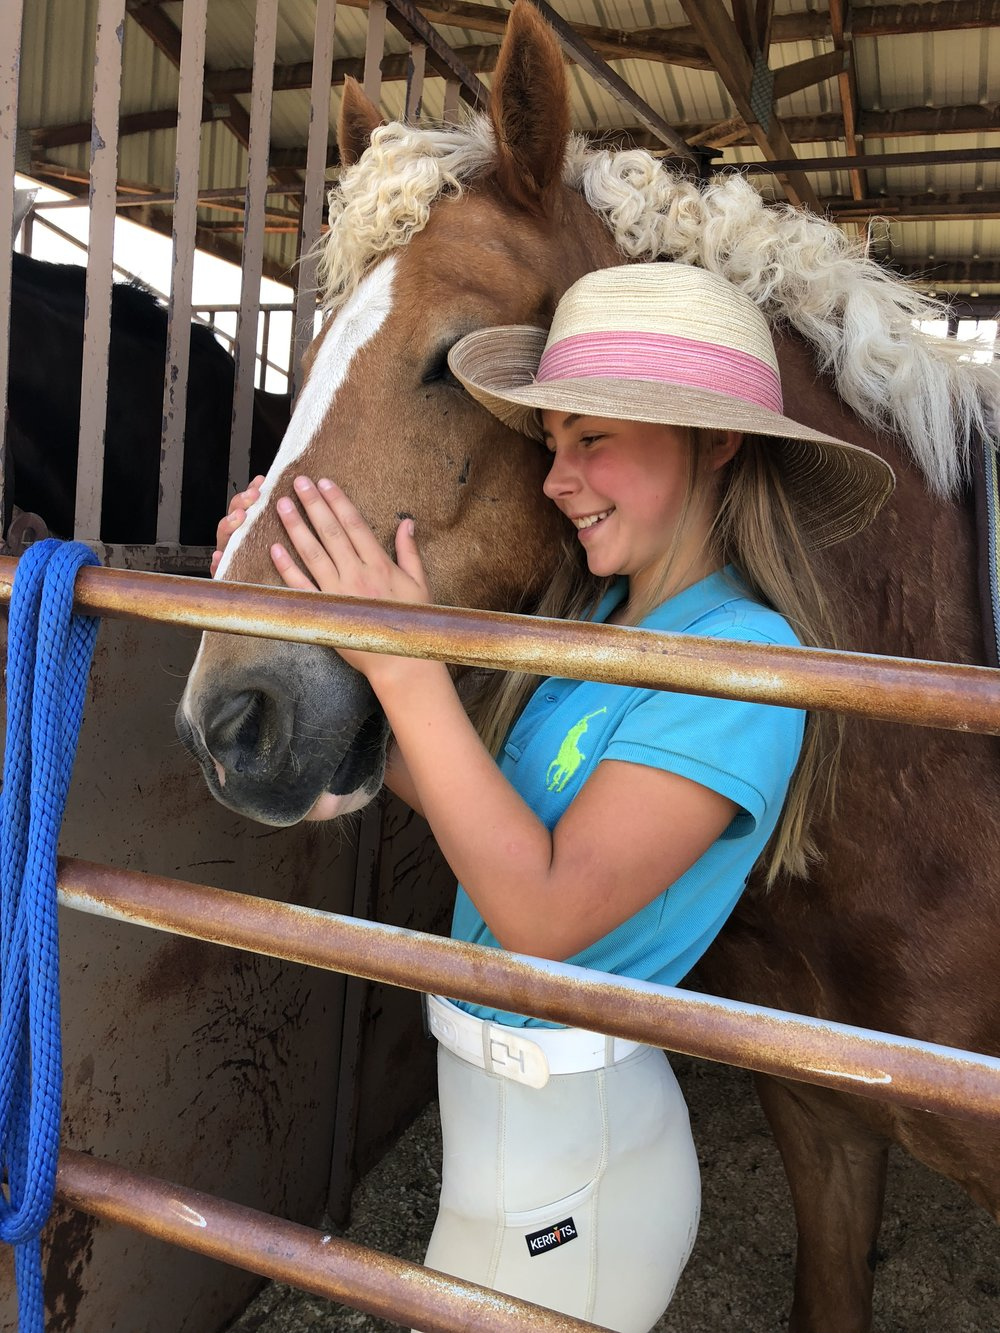 A girl and her horse. - True love.